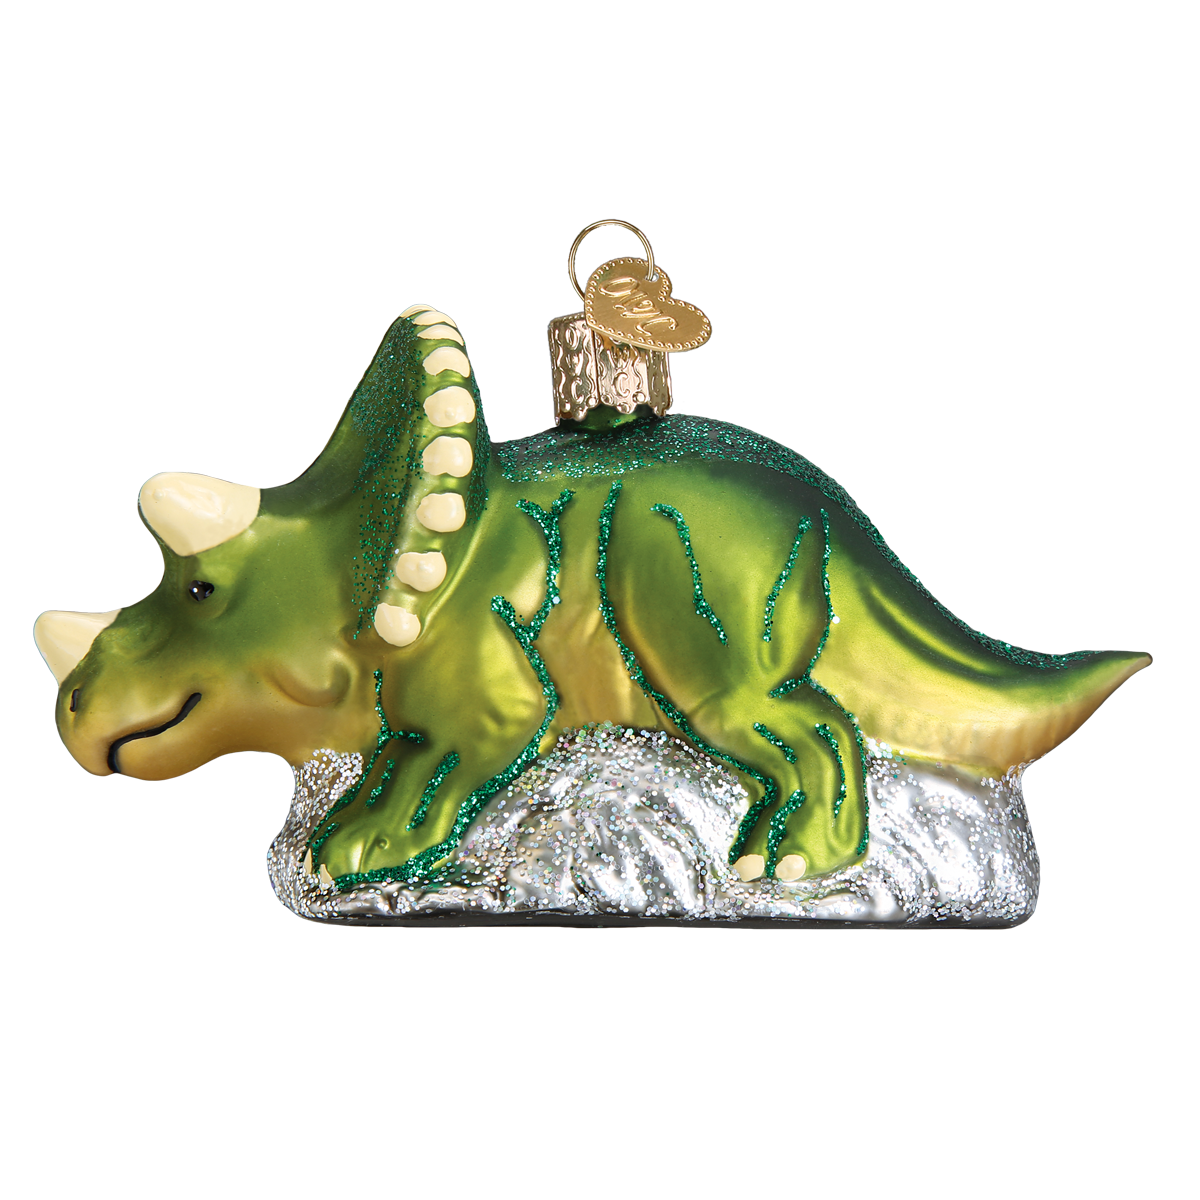 dinosaur ornaments decorations